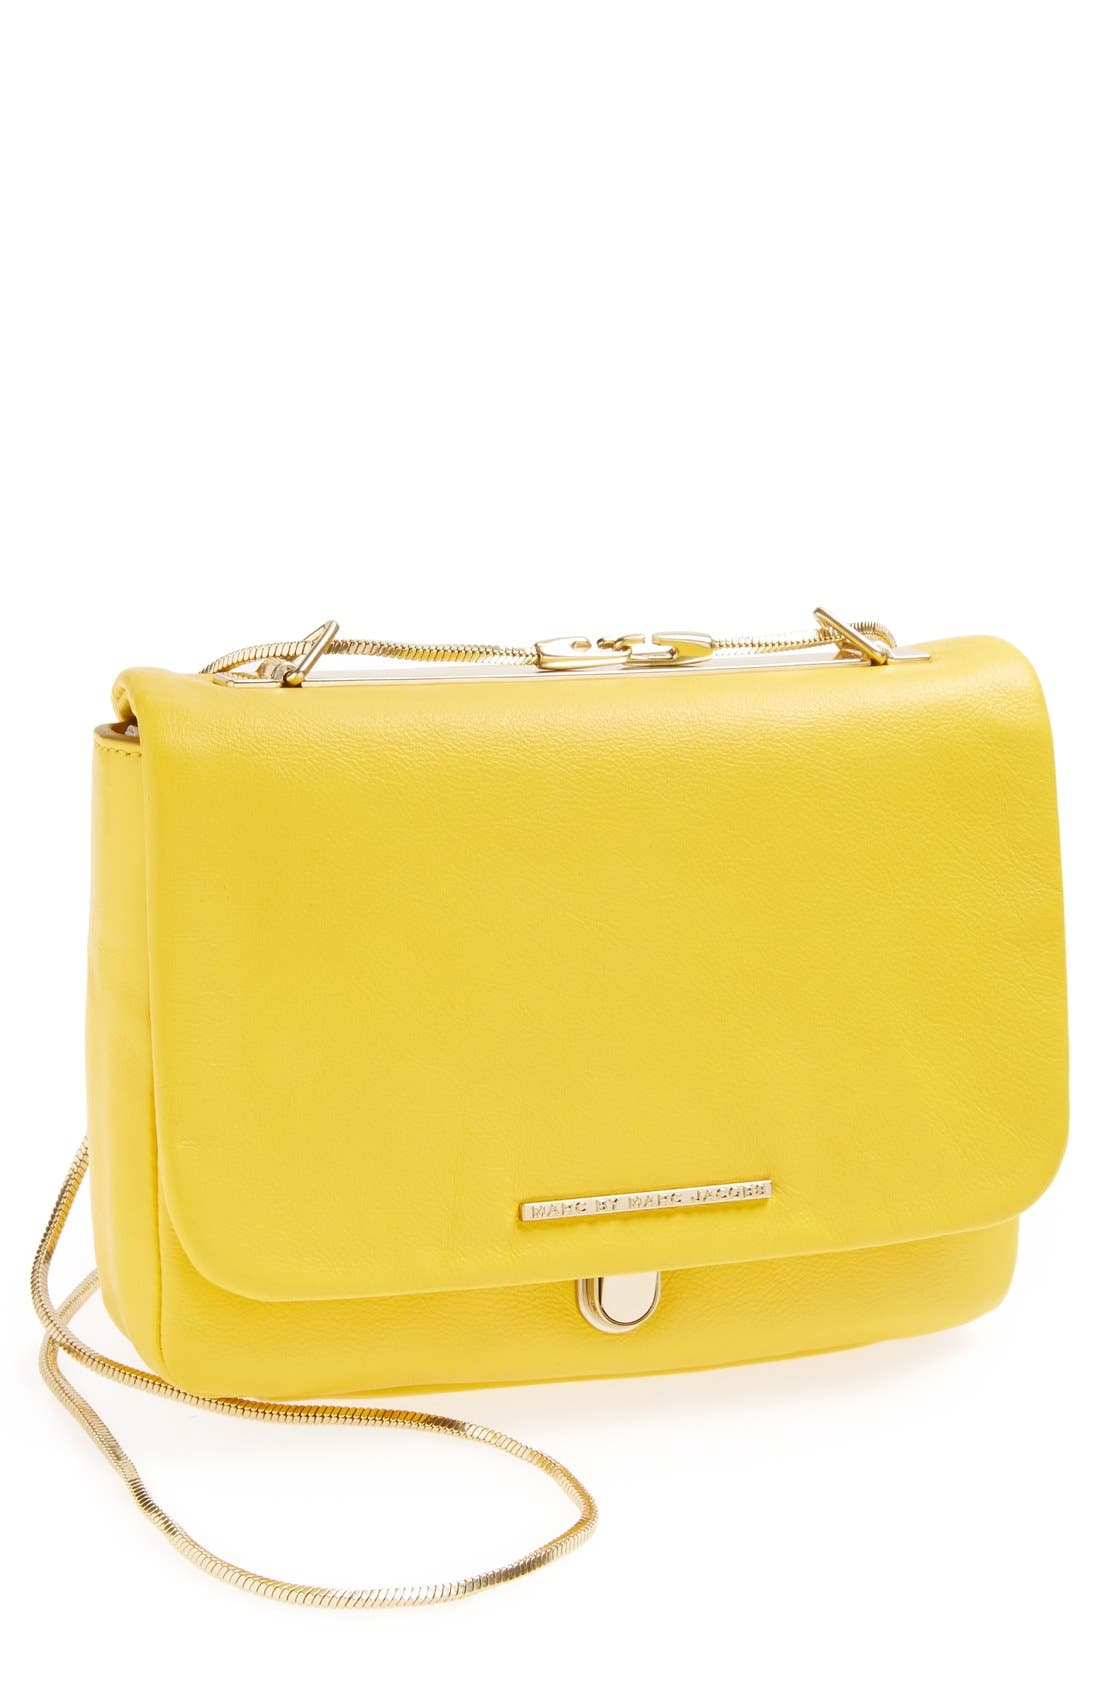 Alternate Image 1 Selected - MARC BY MARC JACOBS 'Third of July' Crossbody Bag